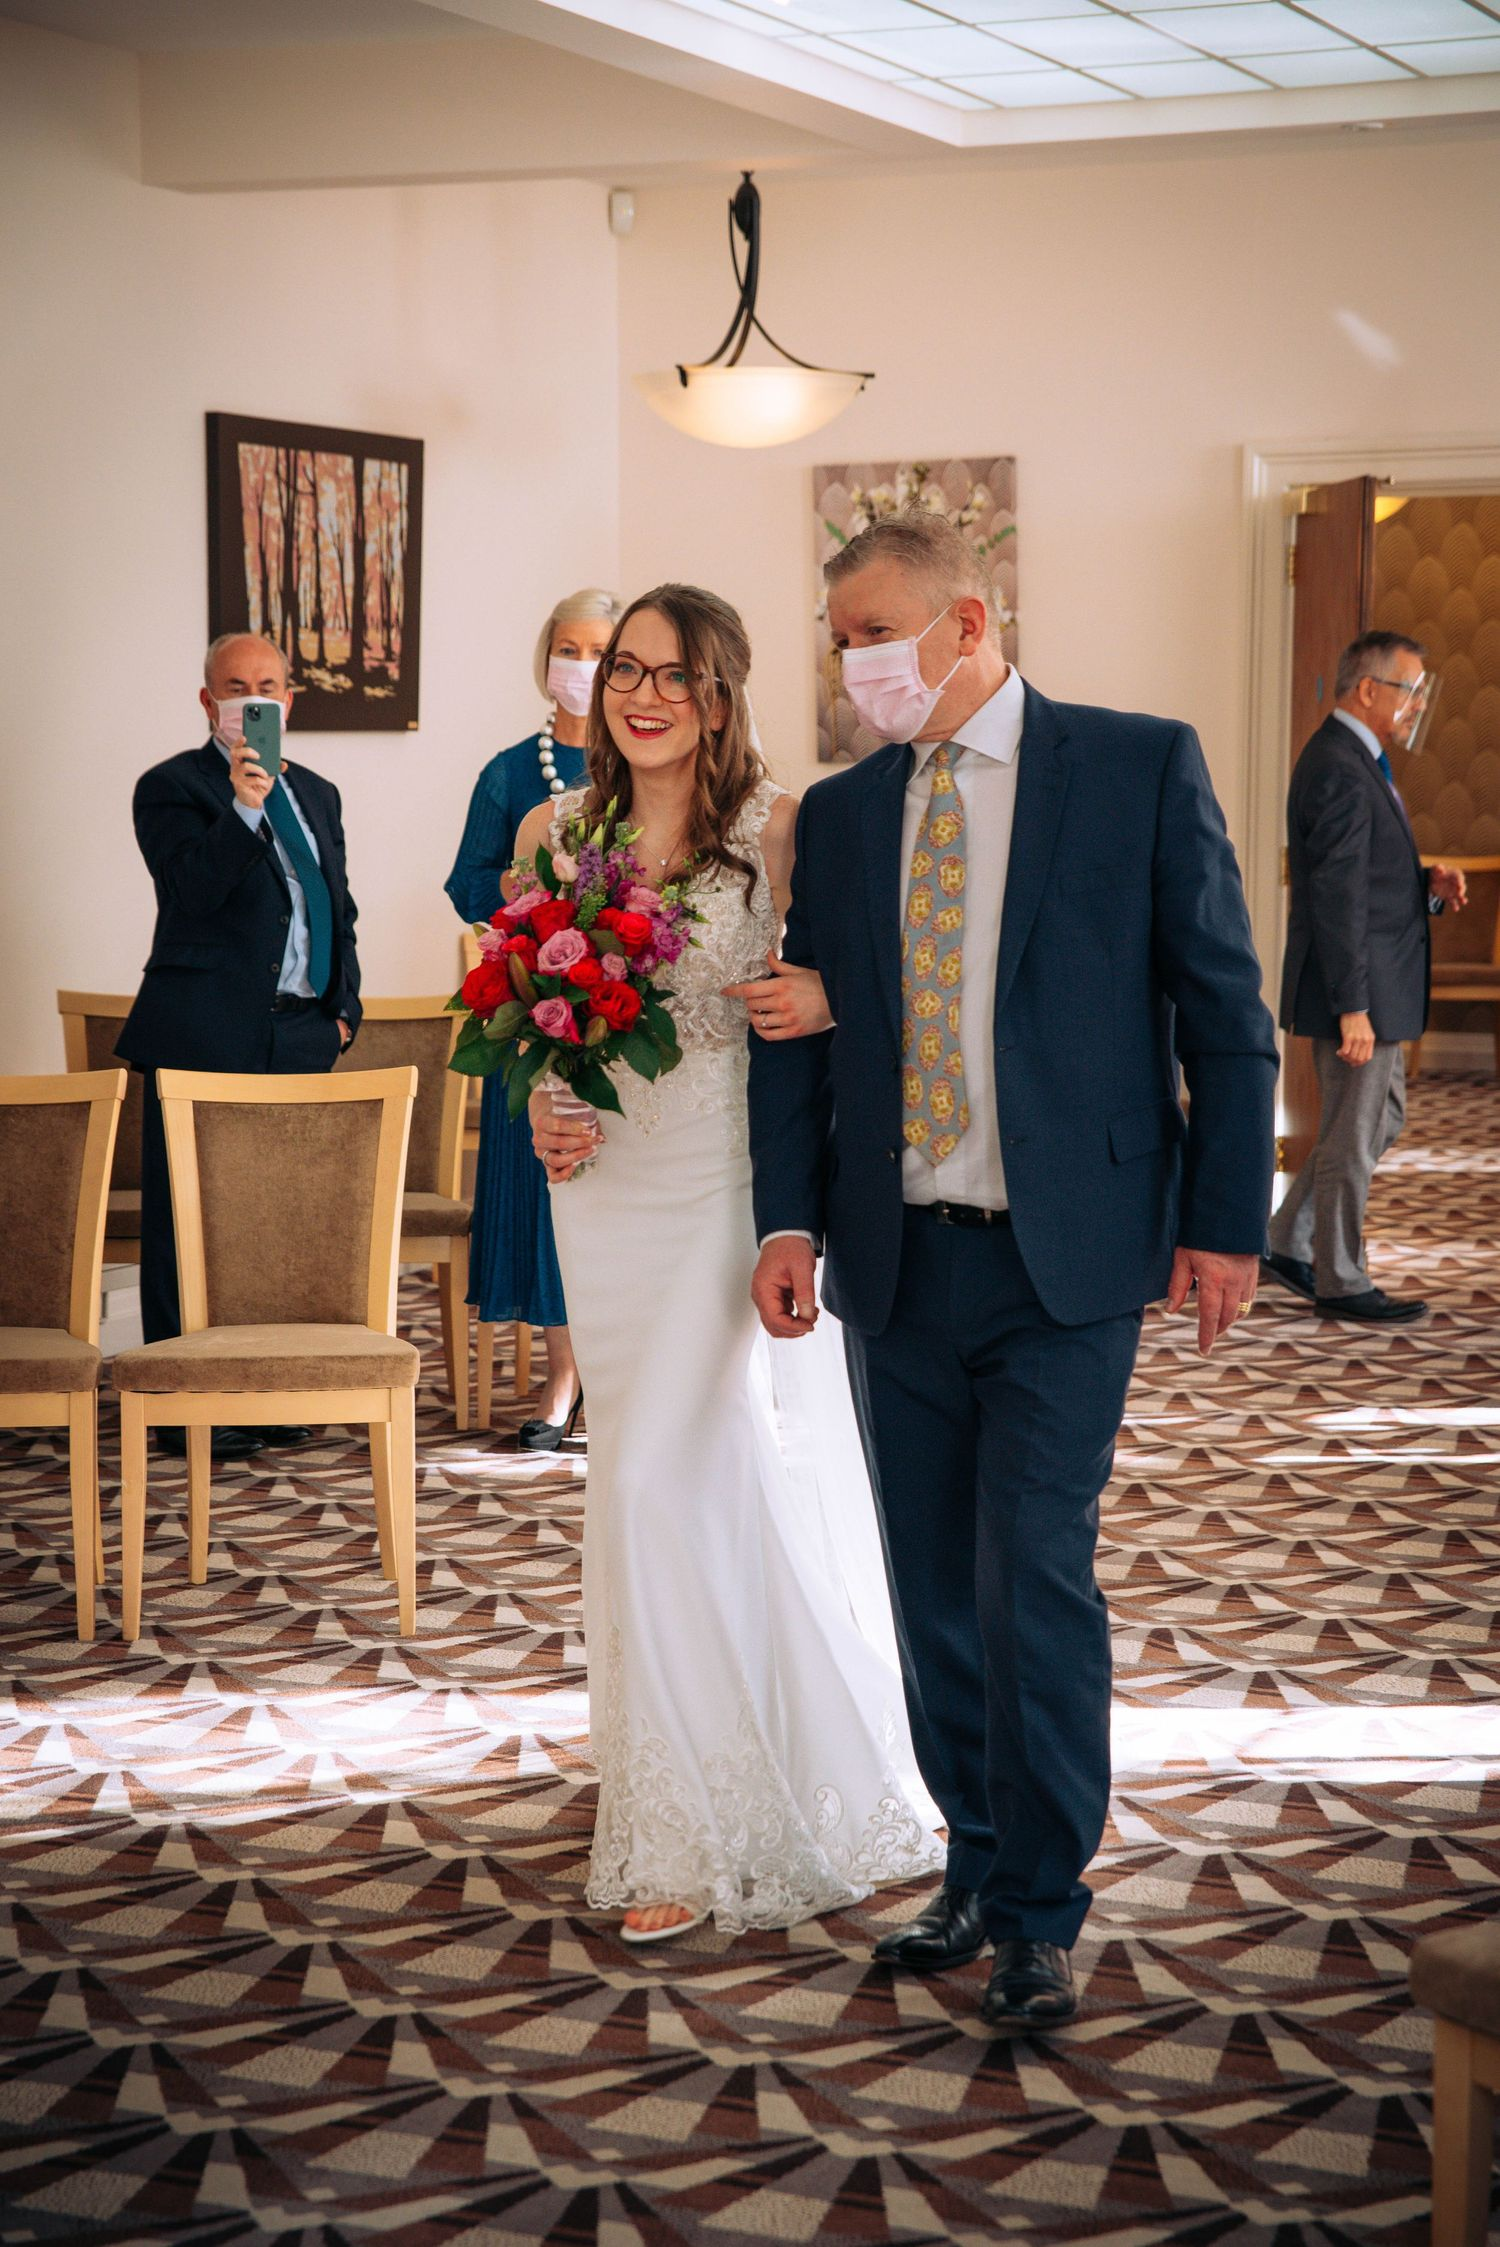 Swindon Registry office wedding by Zara Davis Photography, Gloucestershire bride father of bride